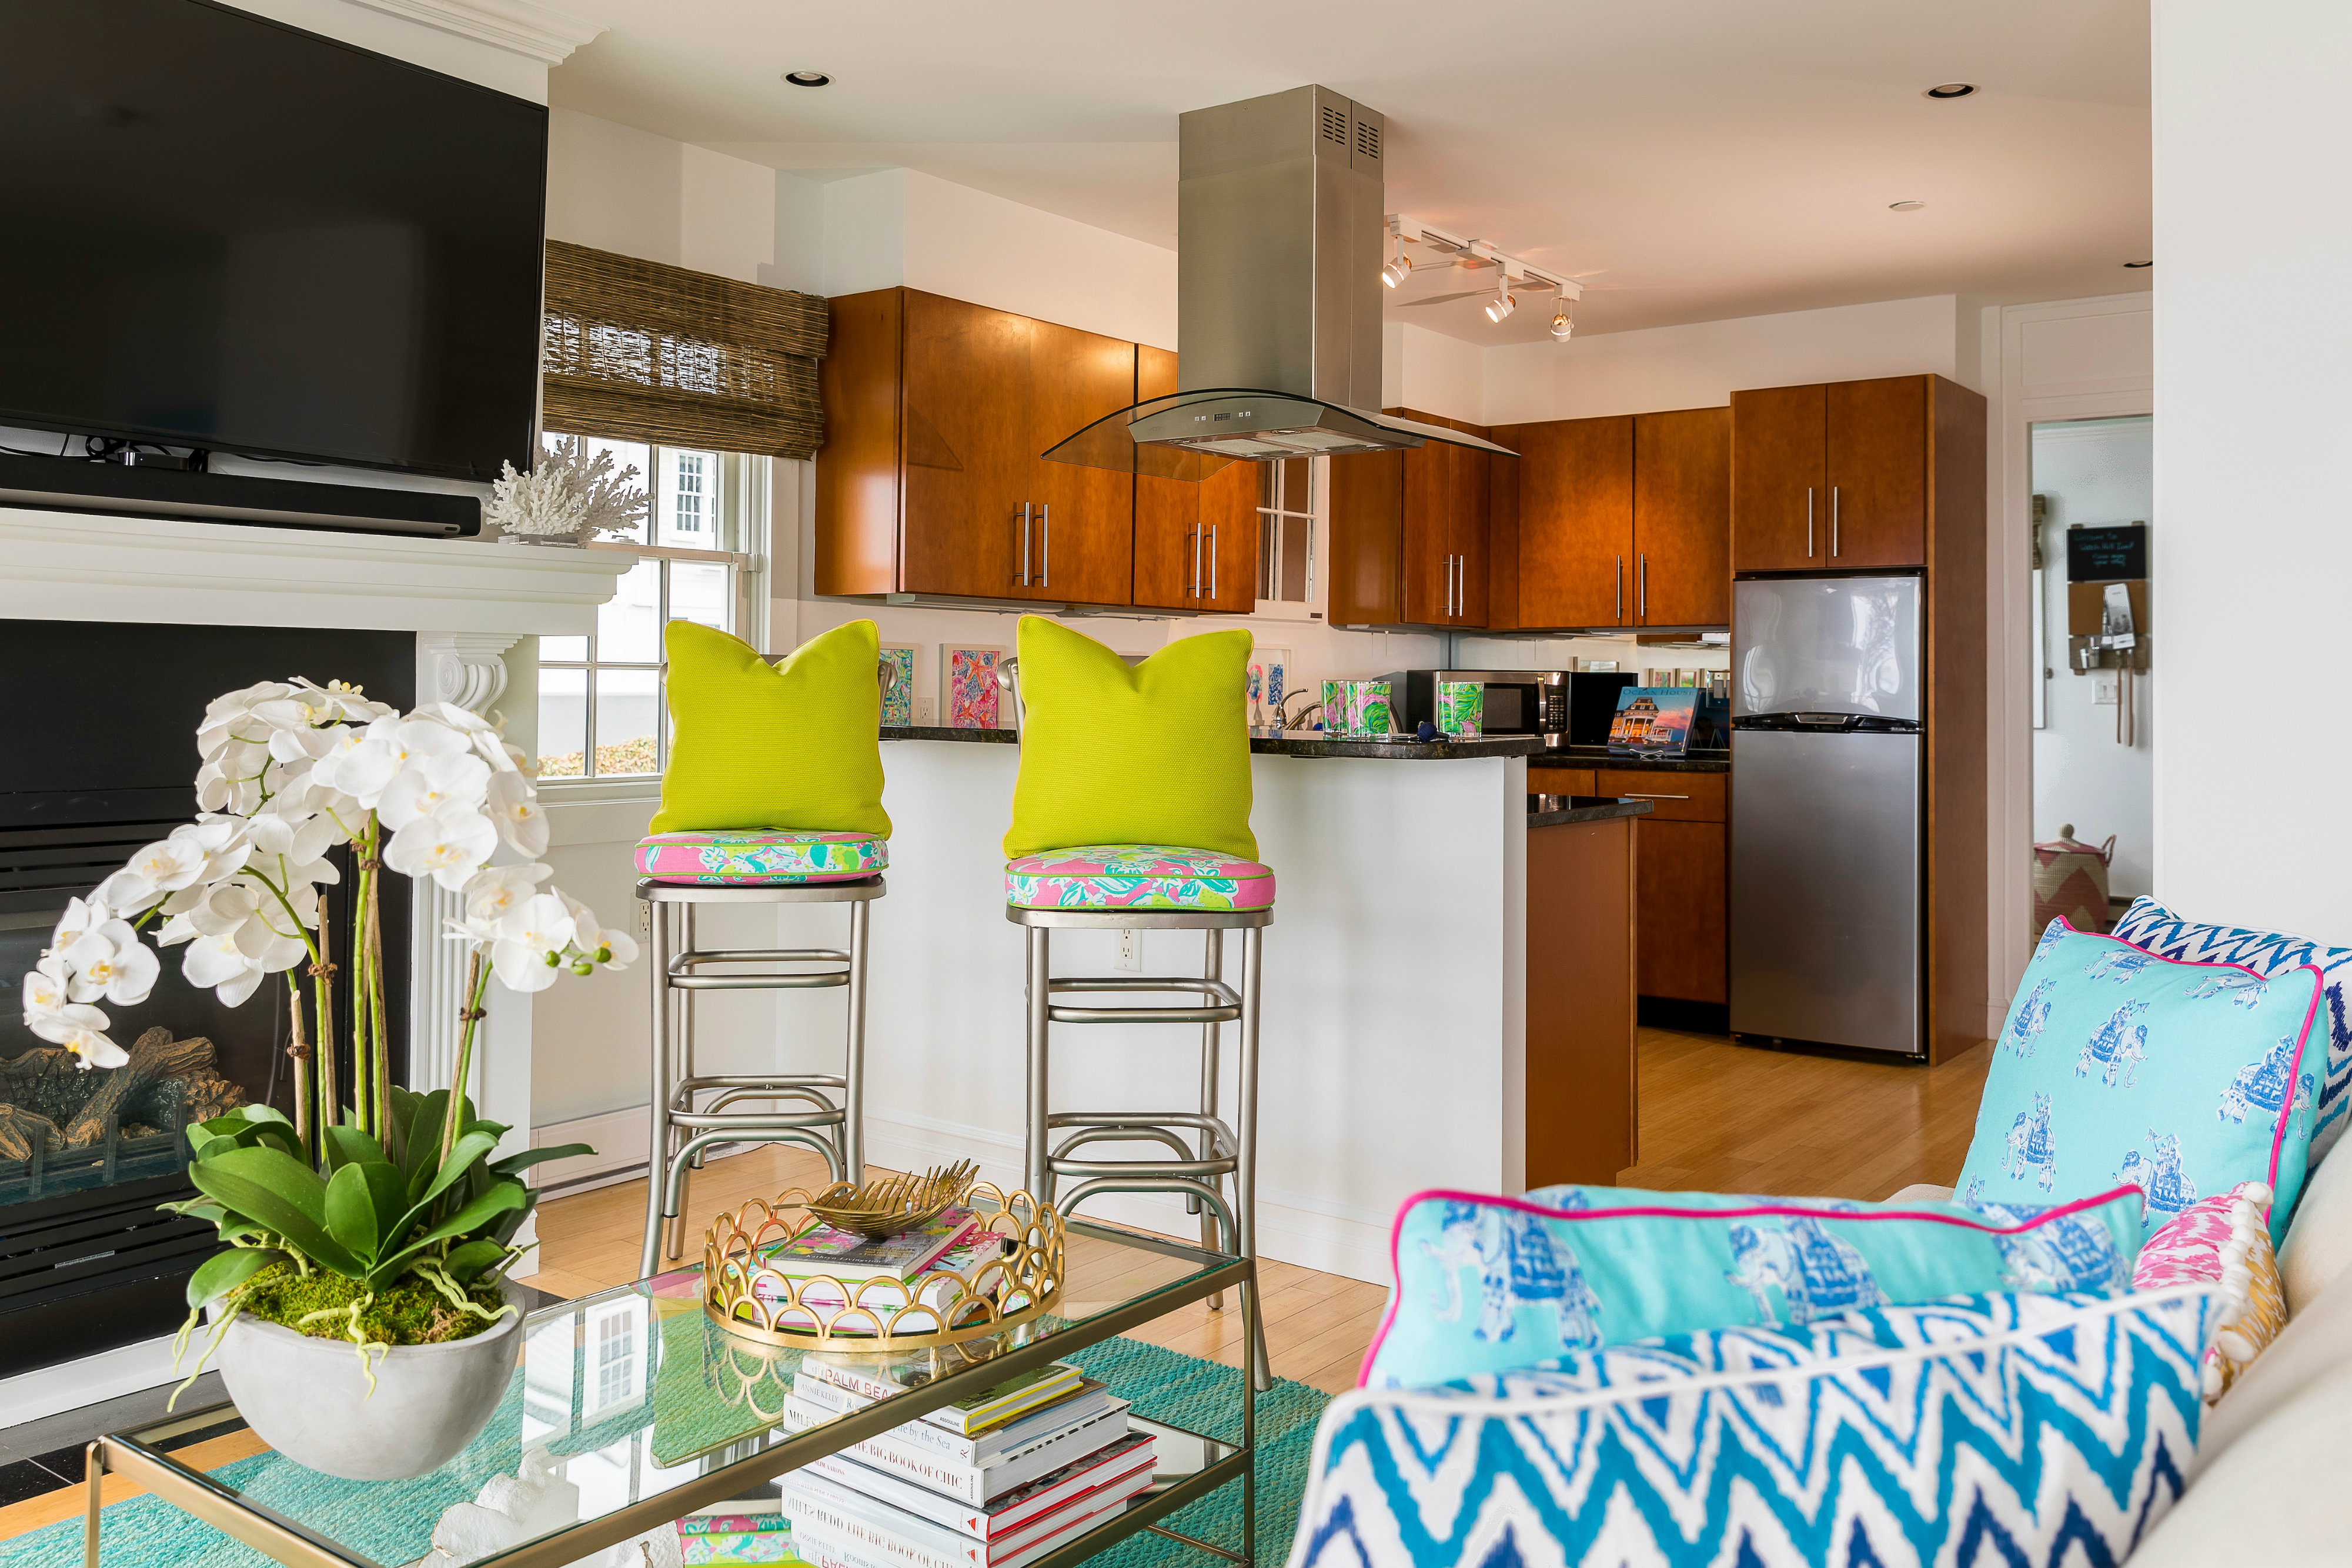 Now Lilly Fans Can Surround Themselves In Prints From The Resort Wear Brand  By Booking The Lilly Pulitzer Suite At The Watch Hill Inn.